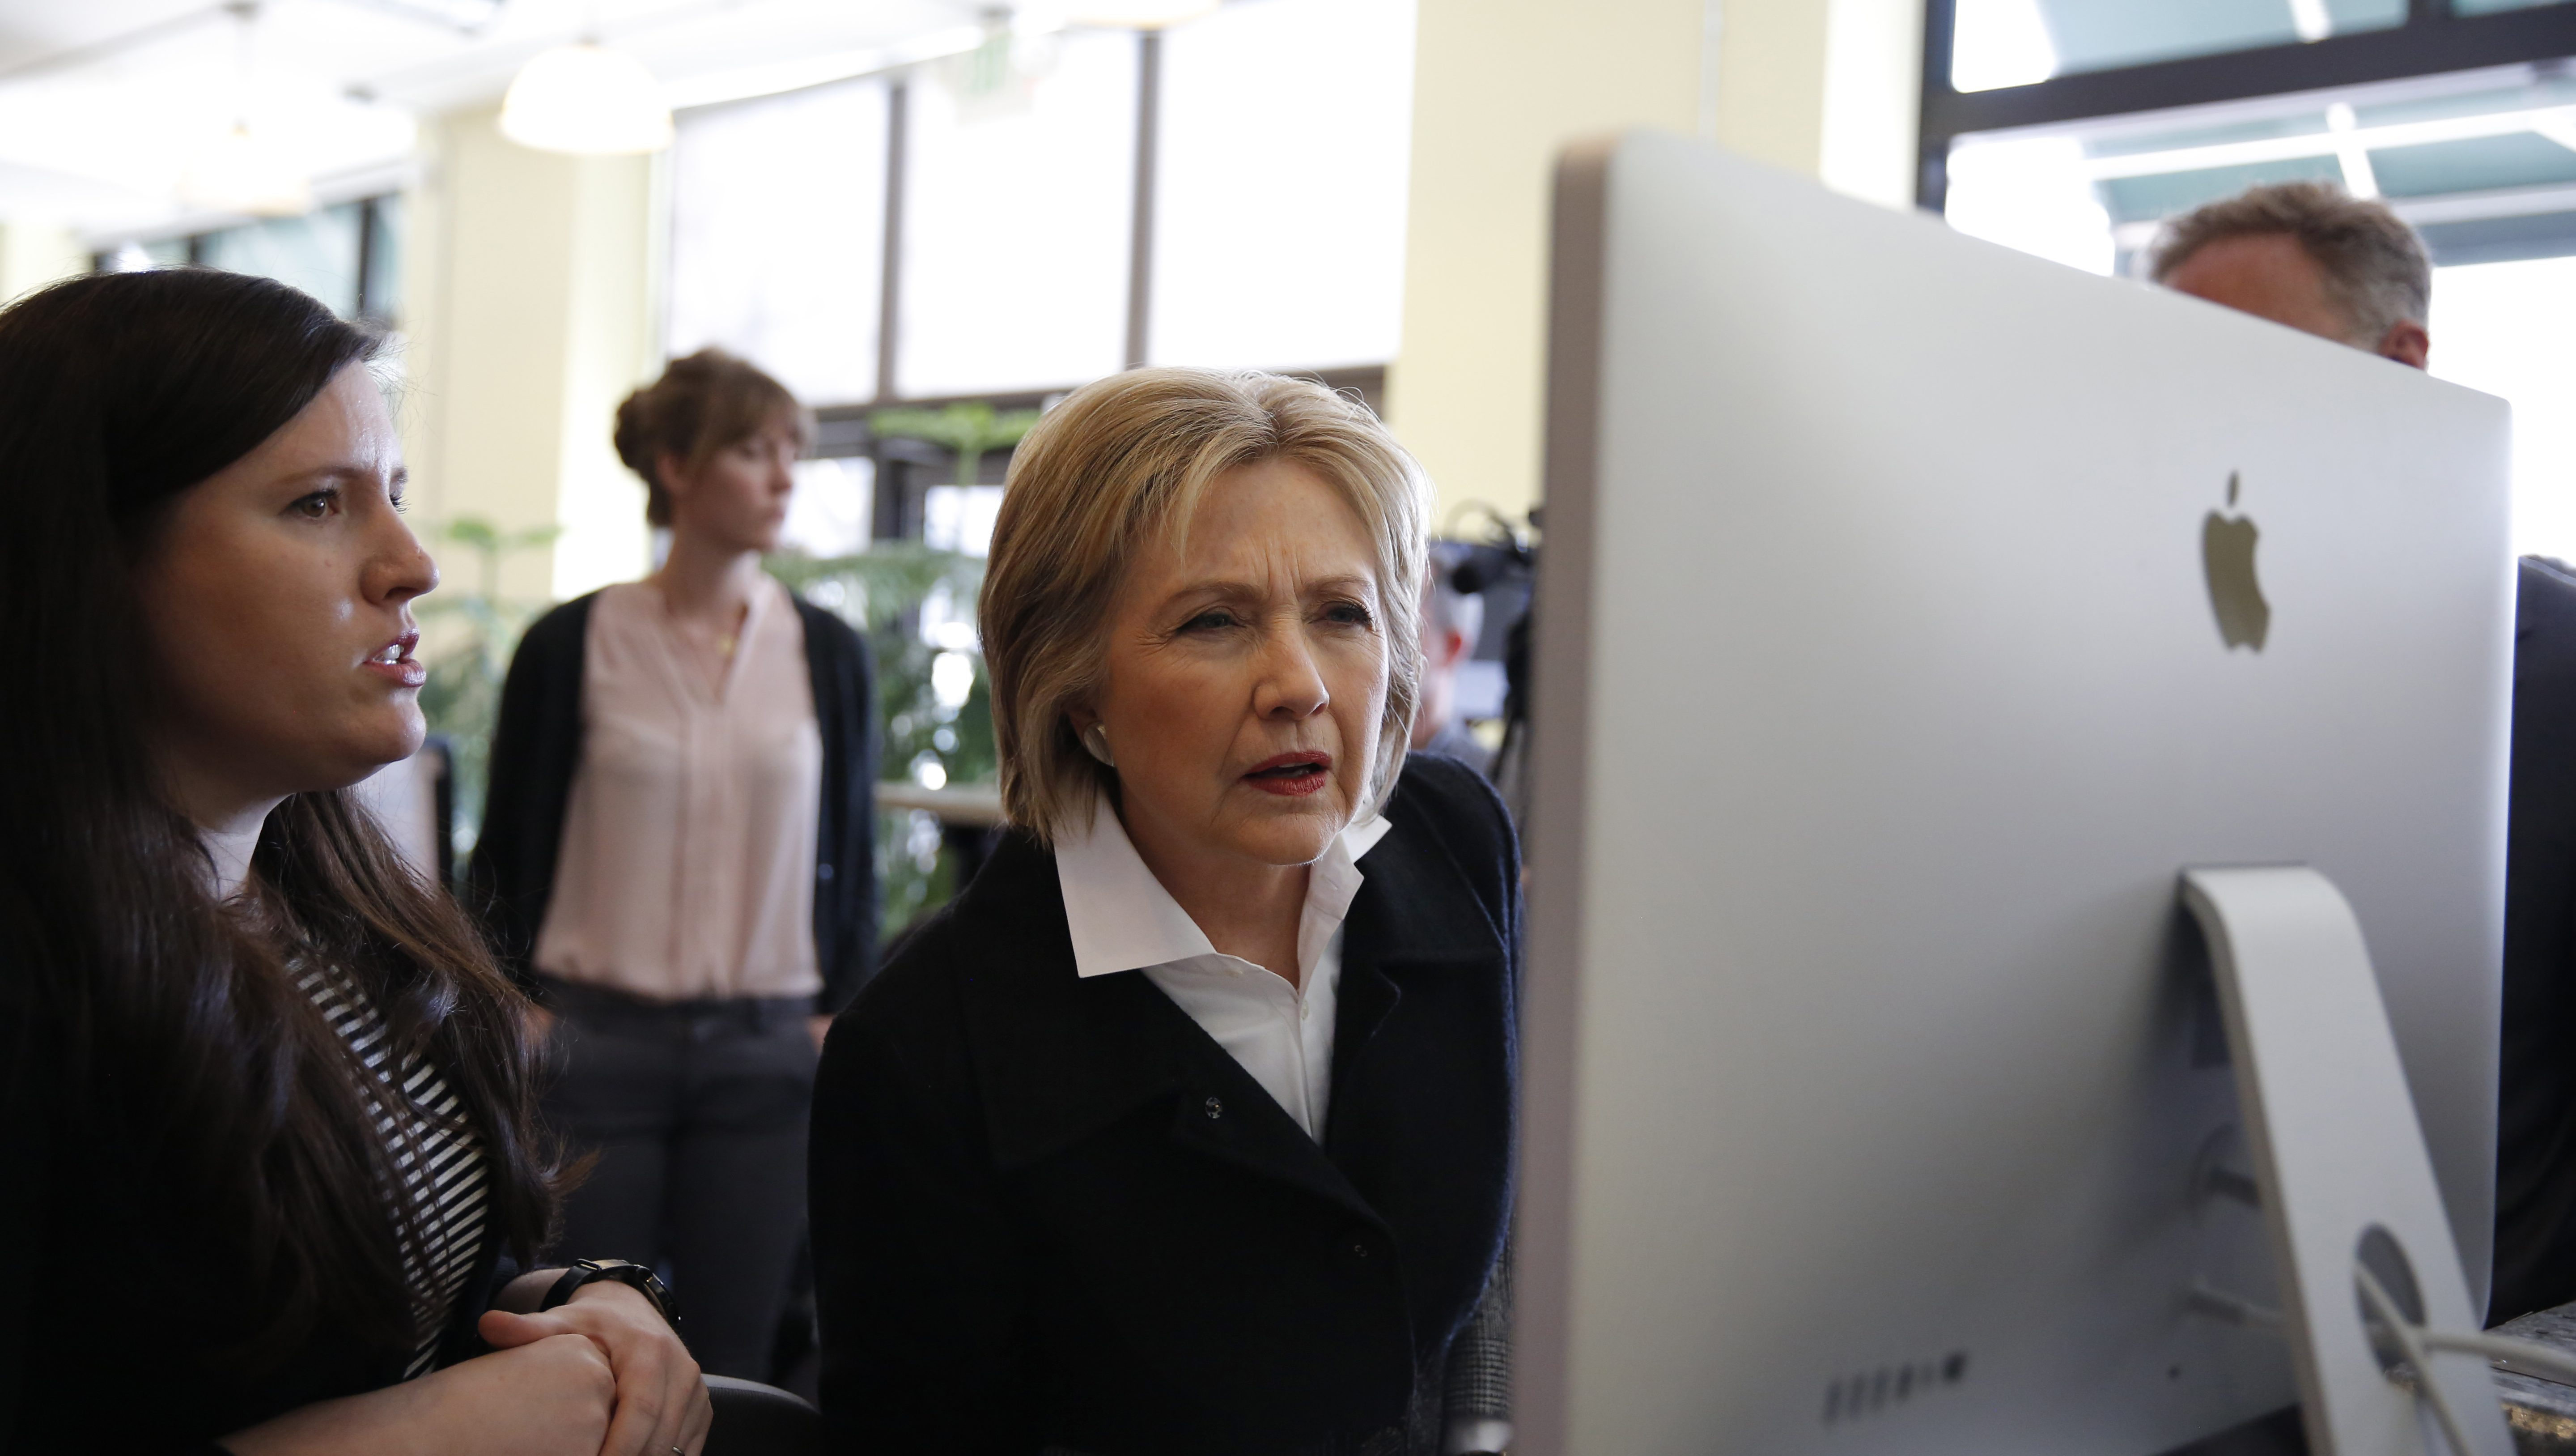 U.S. Democratic presidential candidate Hillary Clinton looks at a computer screen during a  campaign stop at Atomic Object company in Grand Rapids, Michigan, March 7, 2016.